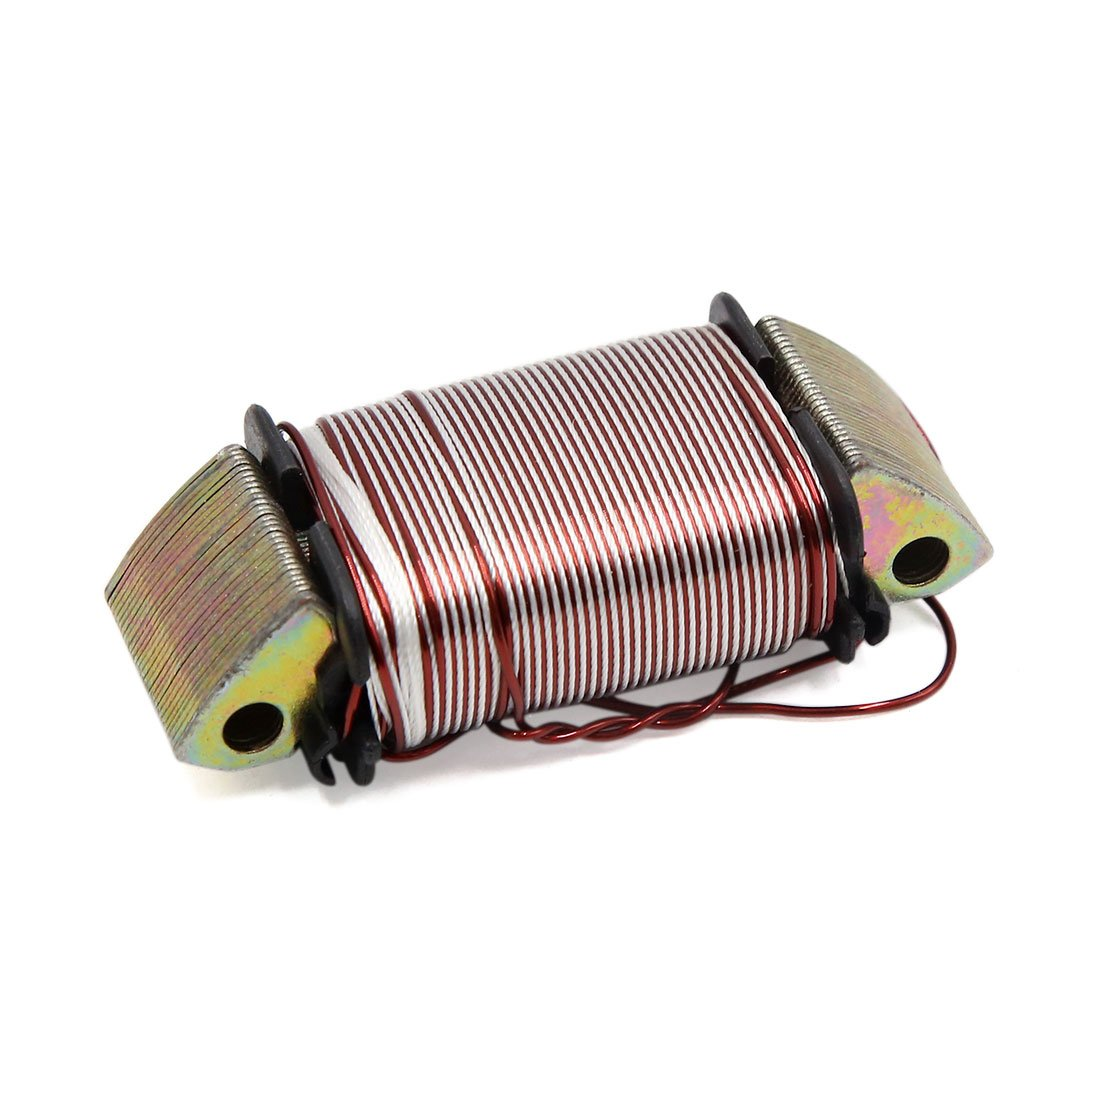 uxcell DC 12V Metal Scooter Motorbike Motorcycle Stator Lighting Coil for JH70 JH100